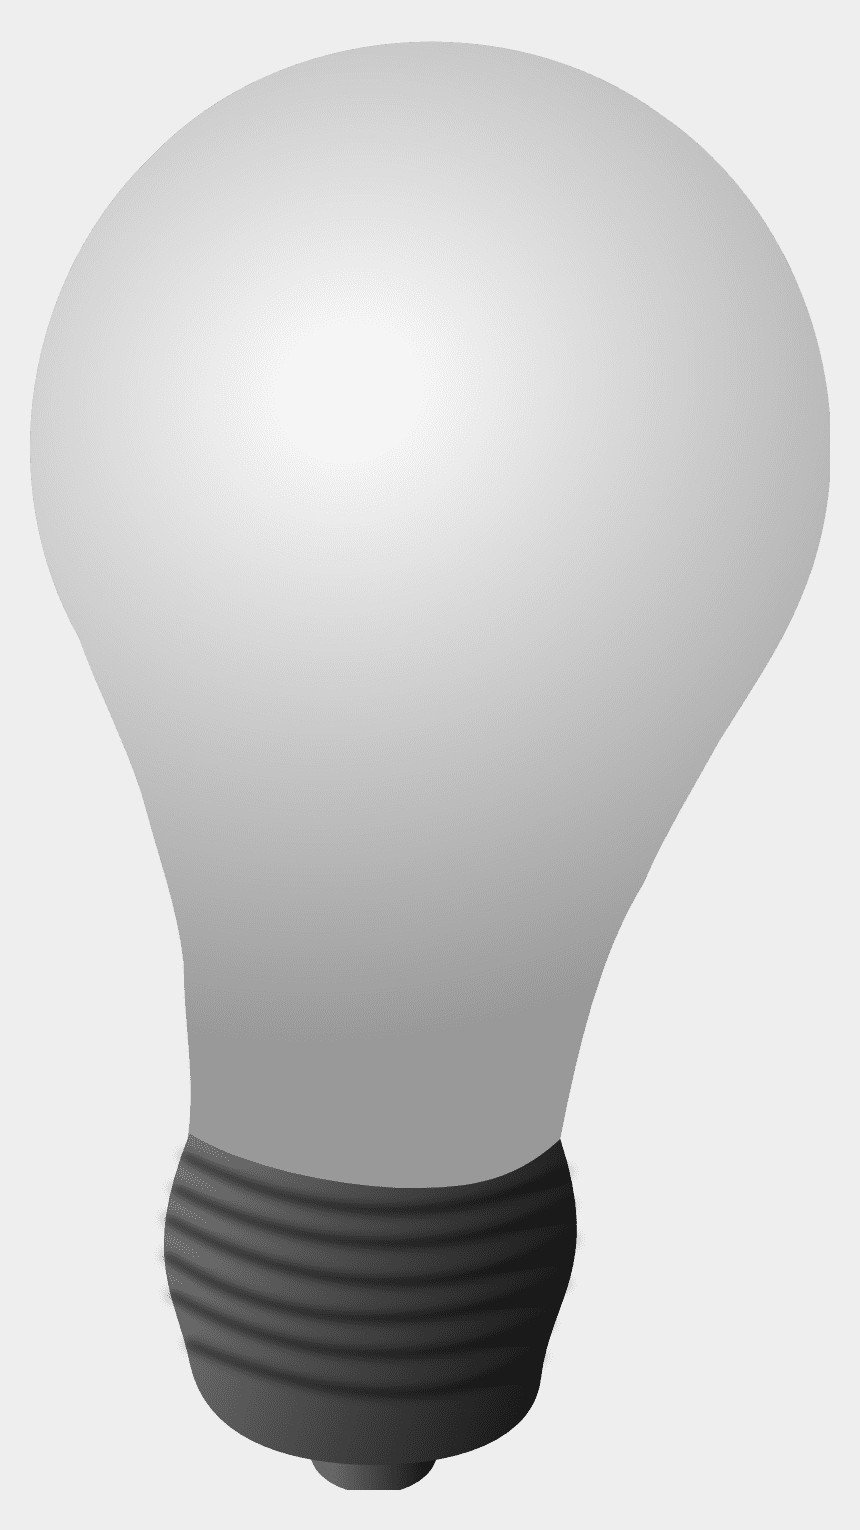 light bulb clipart png, Cartoons - This Png File Is About Light , Bulb , Clipart , Bright - Led Light Bulb Transparent Background